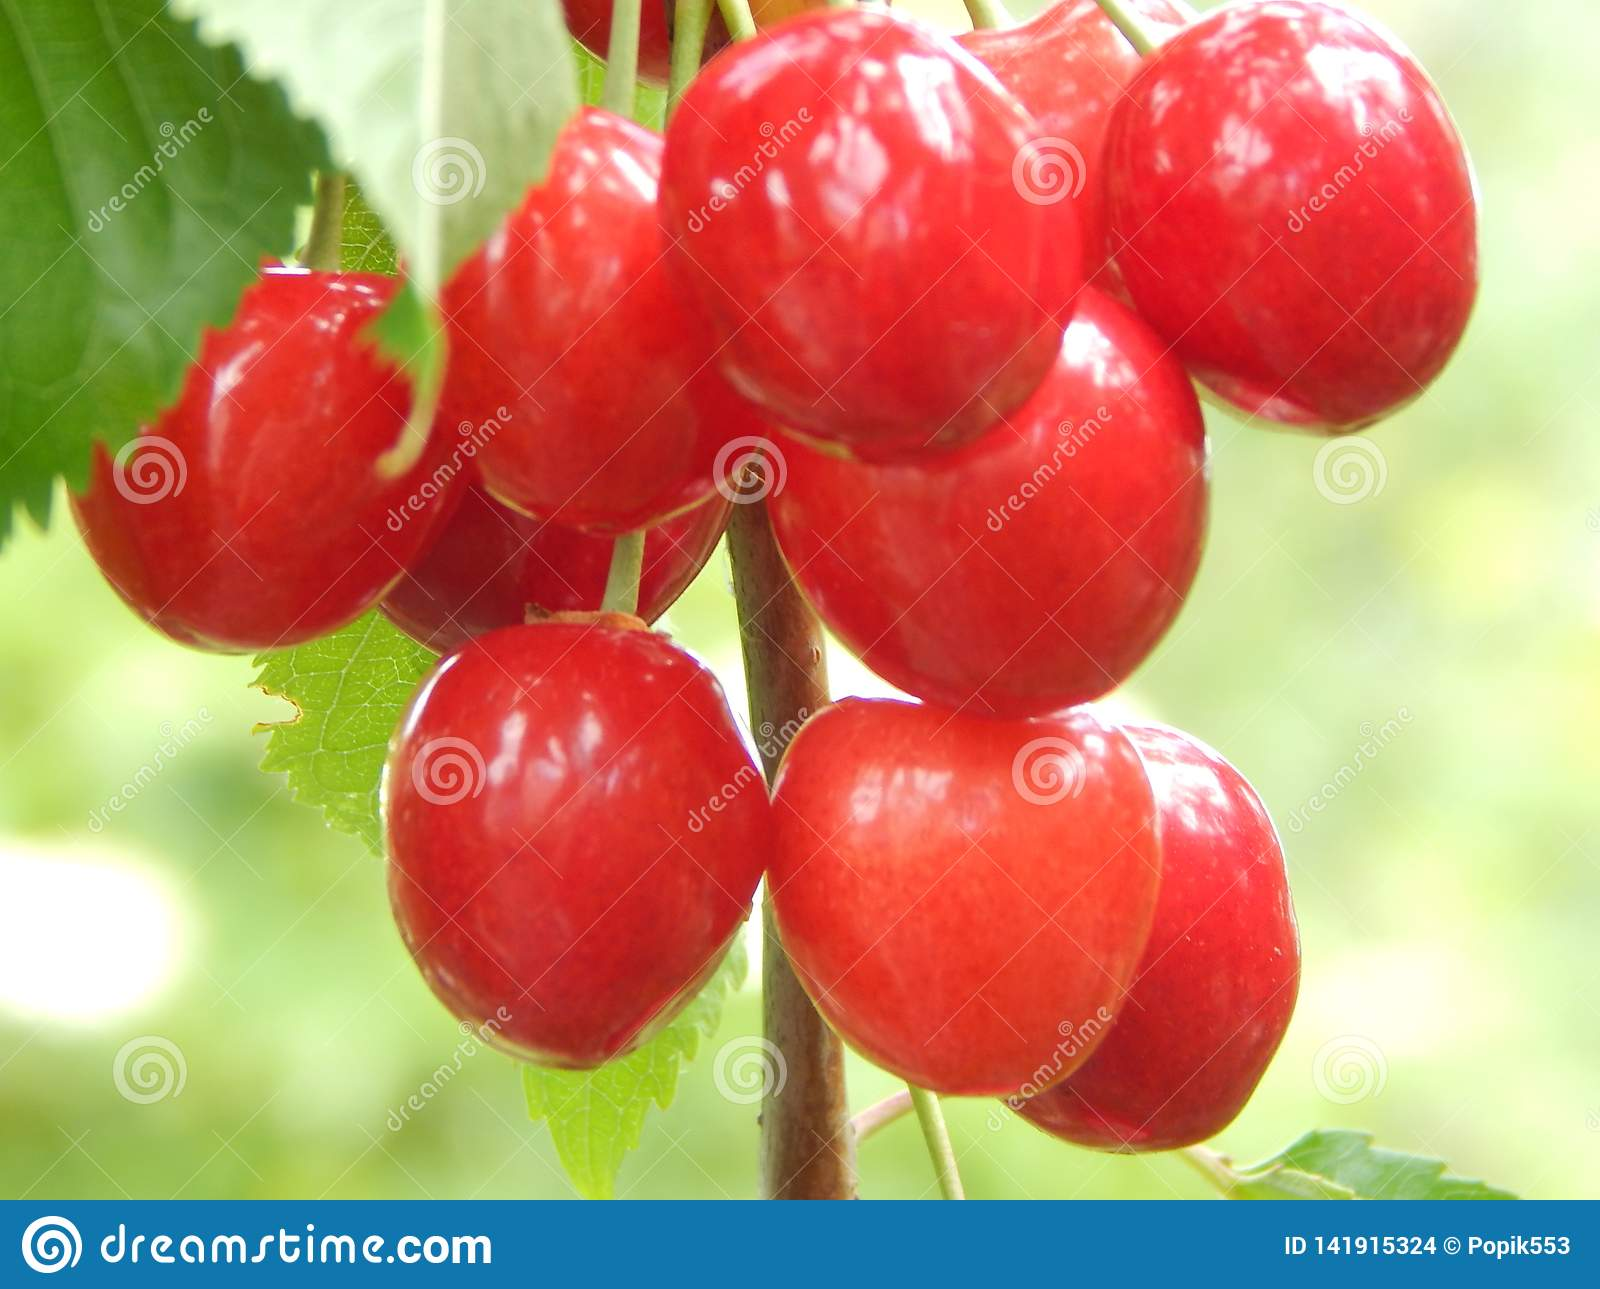 A large, red berry sweet cherry ripened and ready for use.